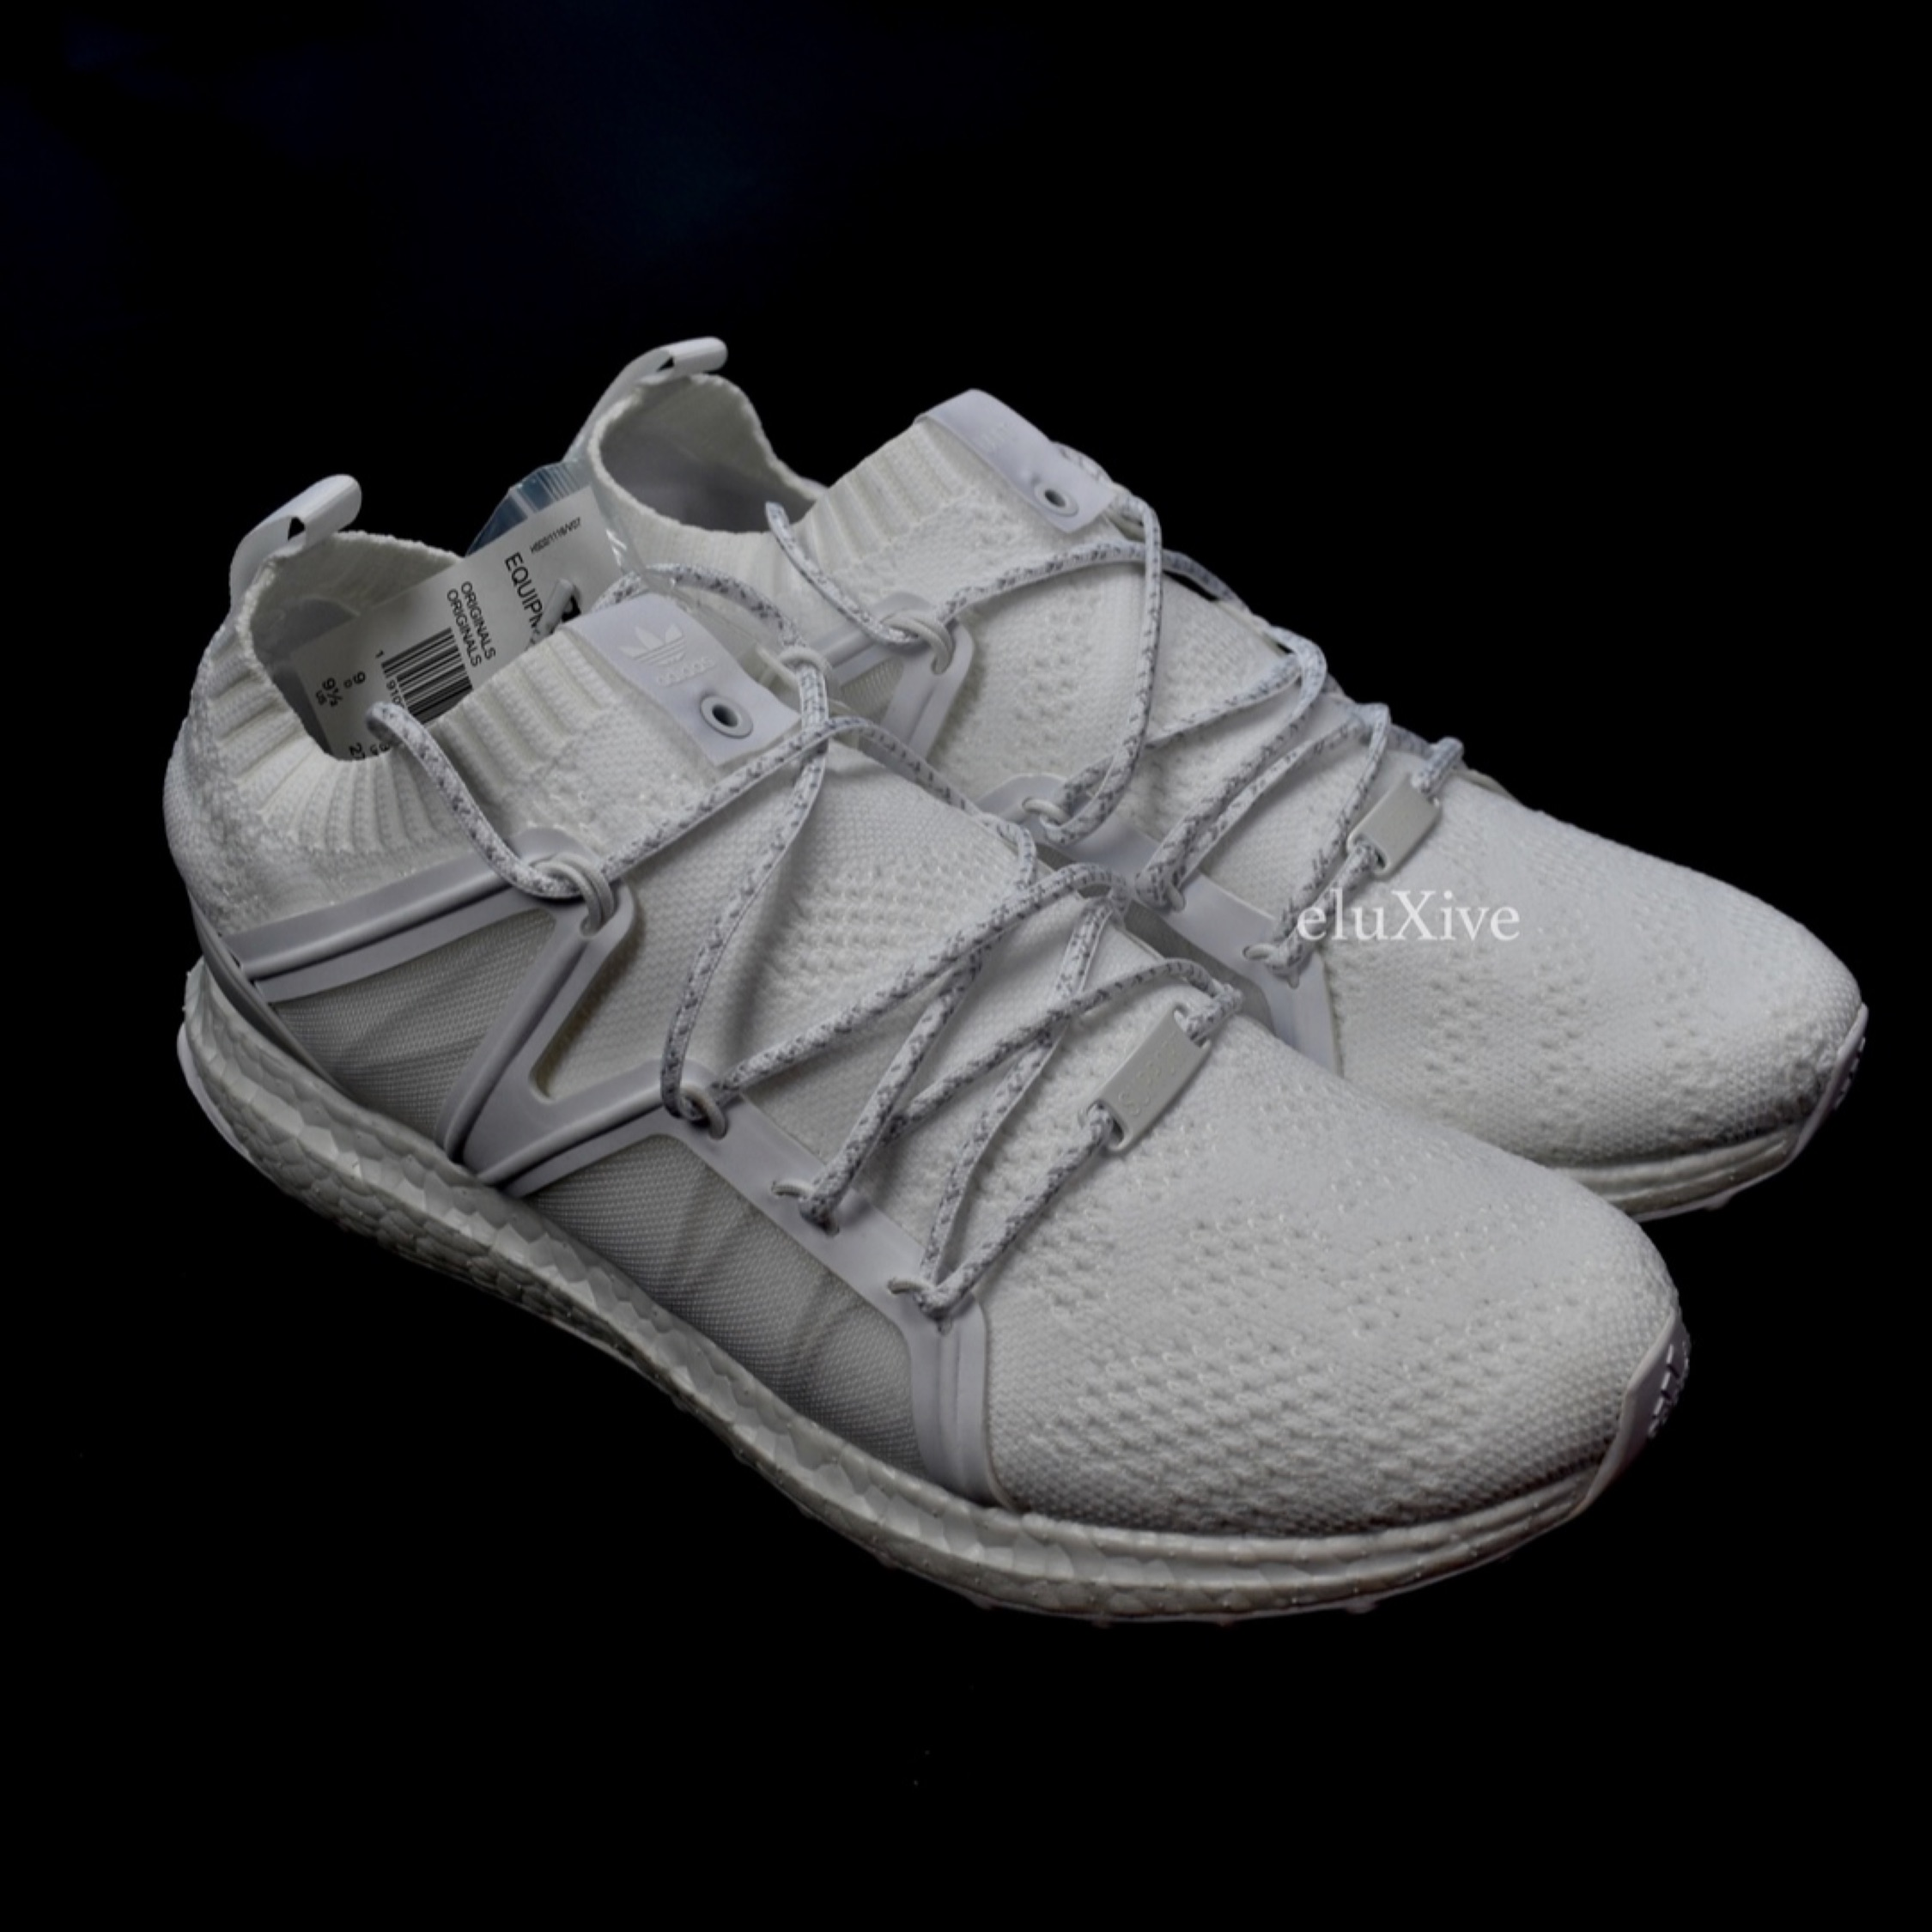 best sneakers 15fdd ee501 Adidas X Bait Eqt Support Ultra Boost 11